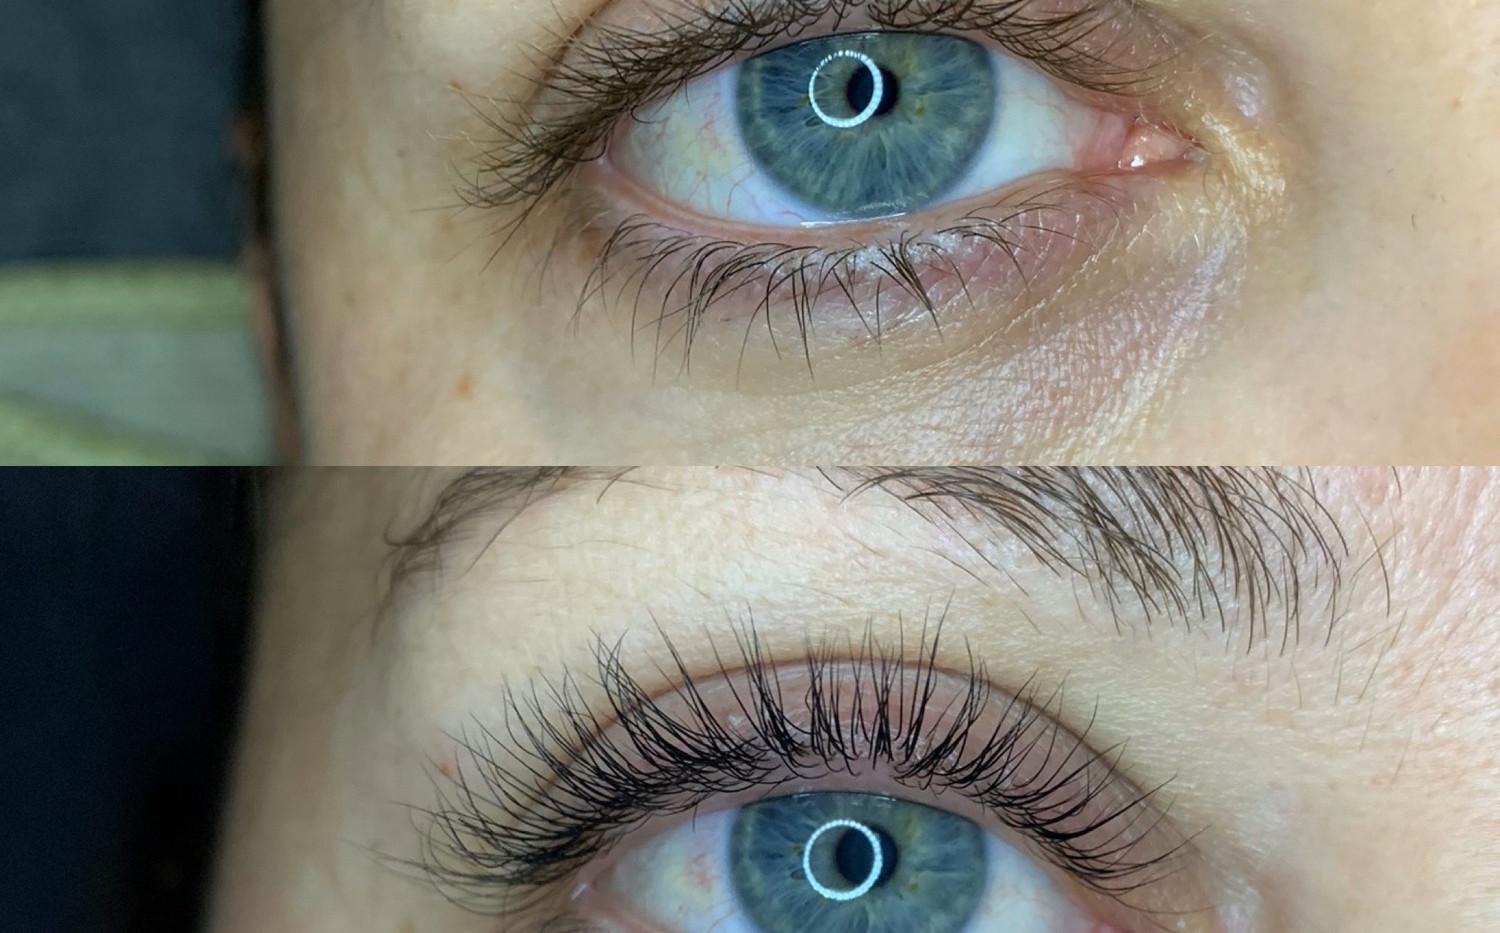 LASH LIFT BY STEFANI